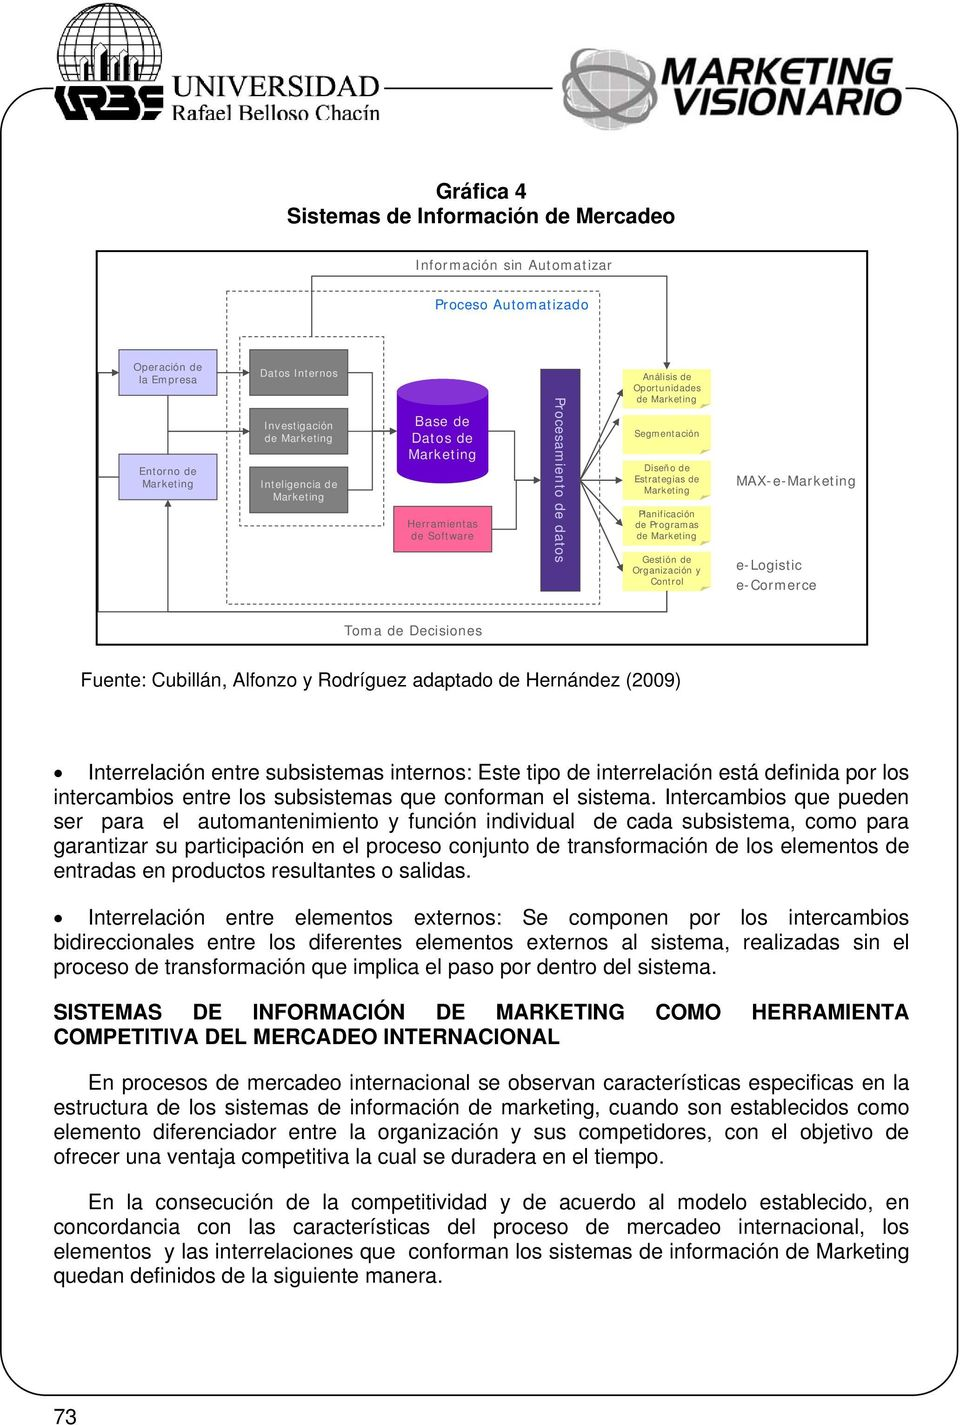 de Marketing Gestión de Organización y Control MAX-e-Marketing e-logistic e-cormerce Toma de Decisiones Fuente: Cubillán, Alfonzo y Rodríguez adaptado de Hernández (2009) Interrelación entre